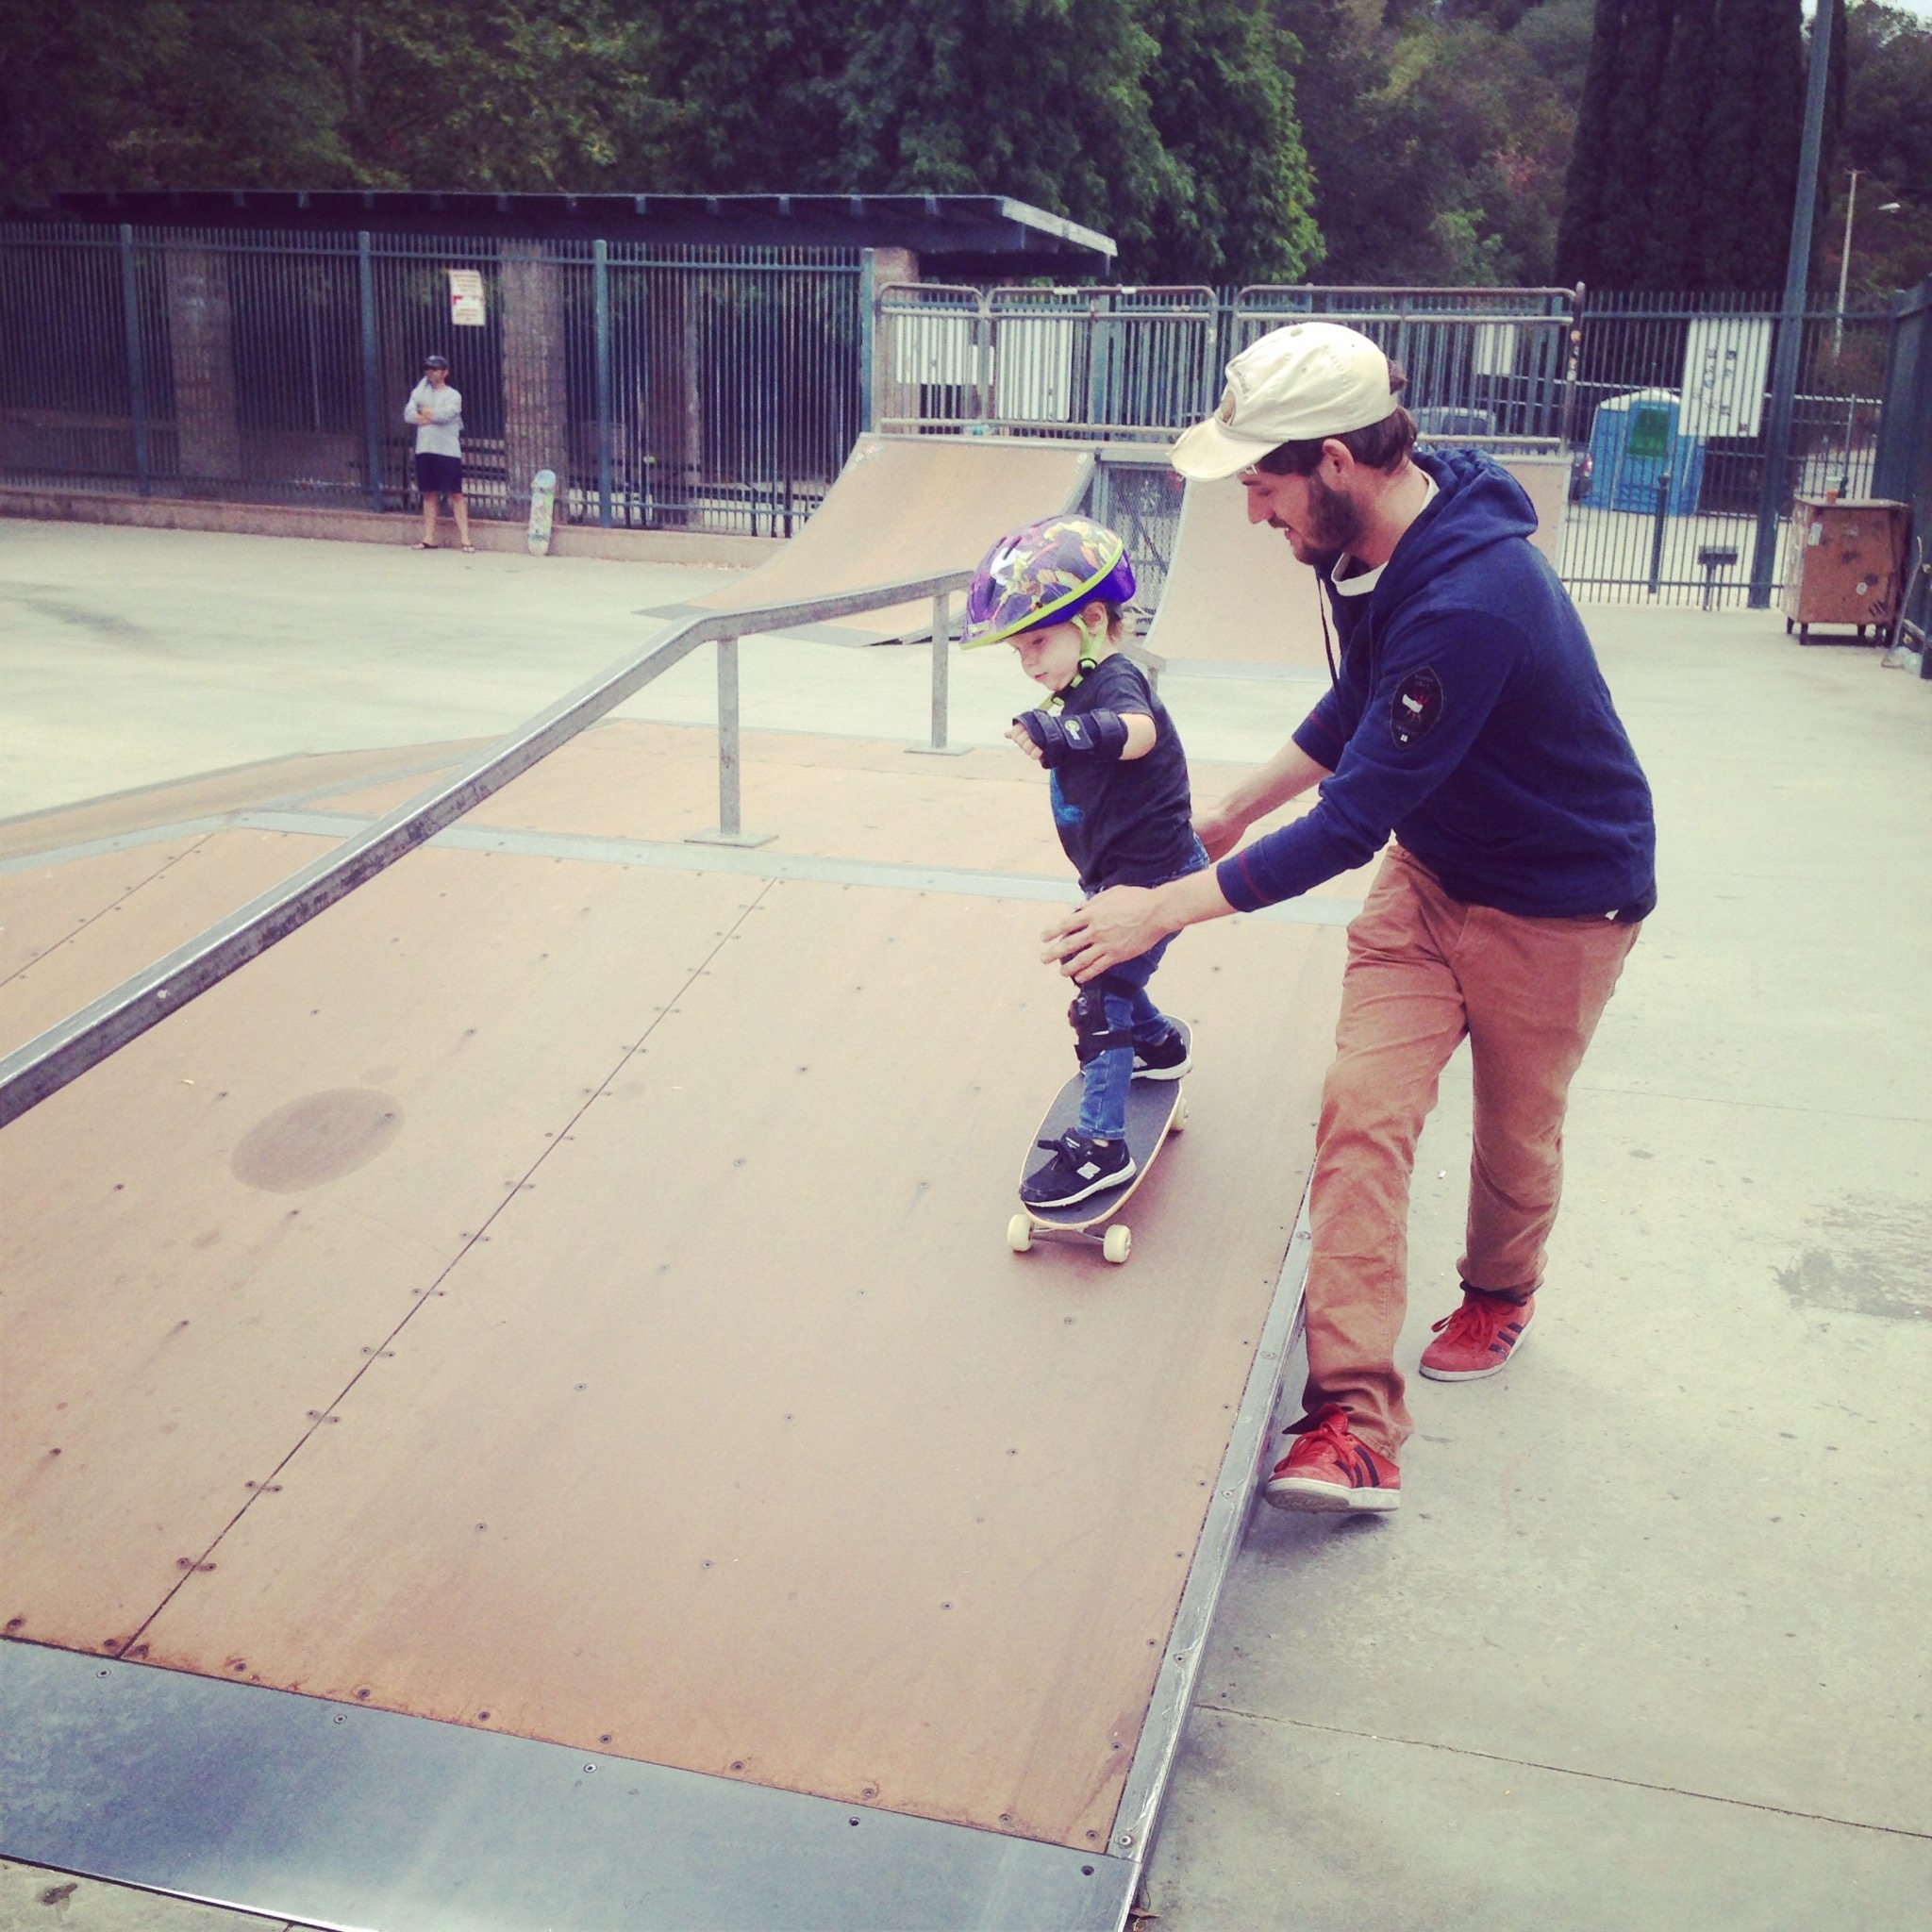 toddler on skateboard with dad